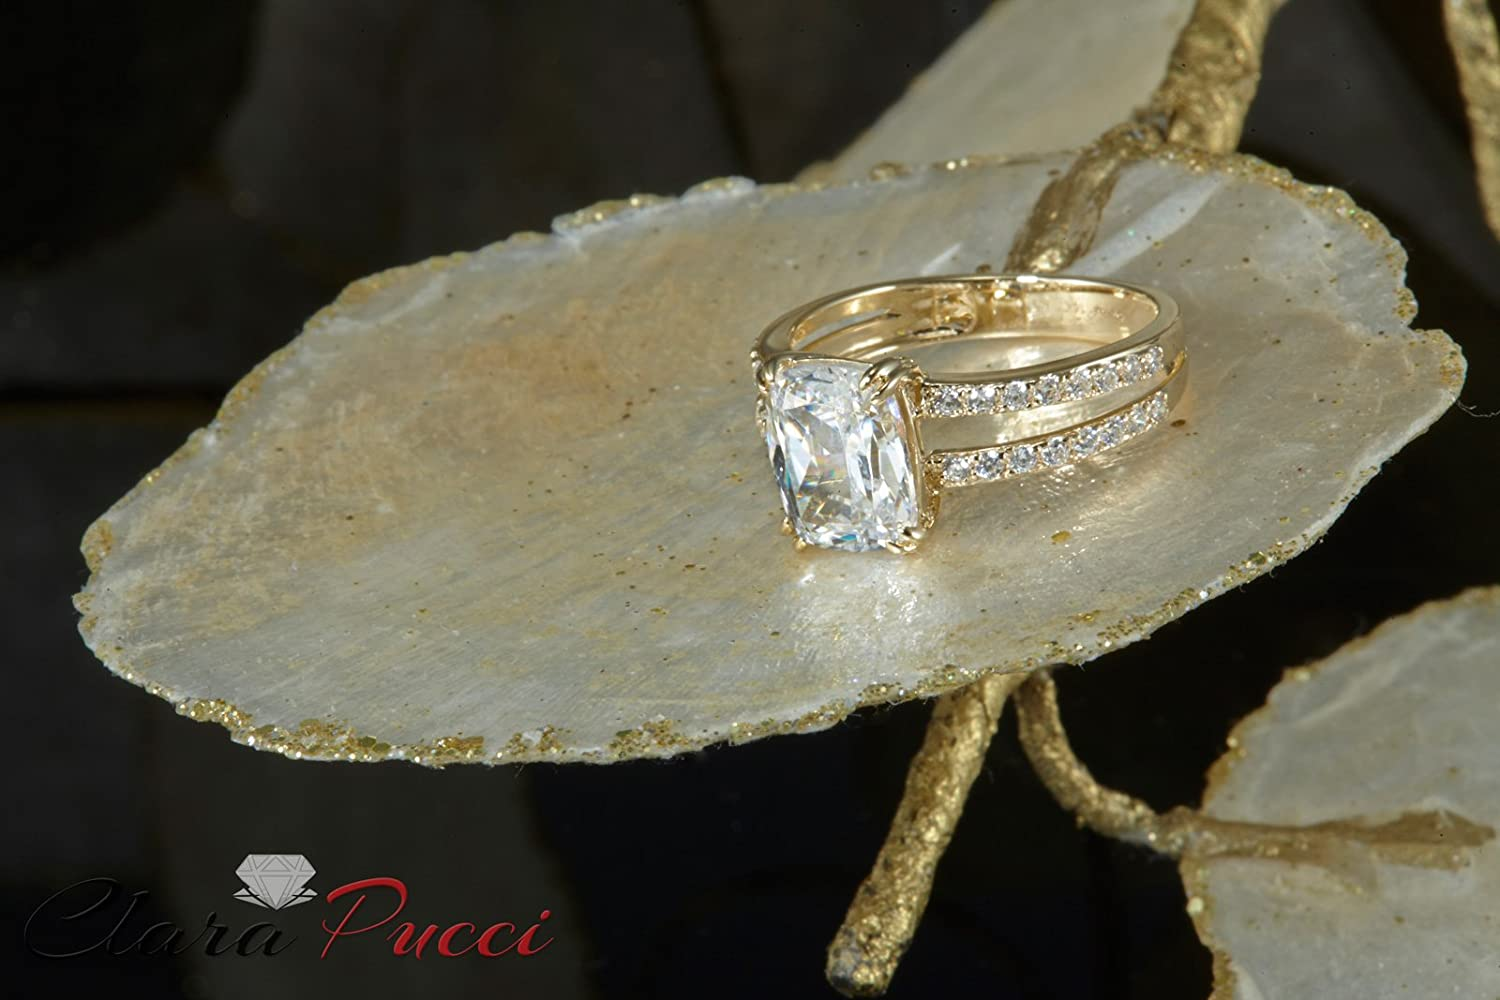 Clara Pucci 4.55 CT Designer Cushion Cut CZ Classic Solitaire Ring Band 14K Solid Yellow Gold Jewelry